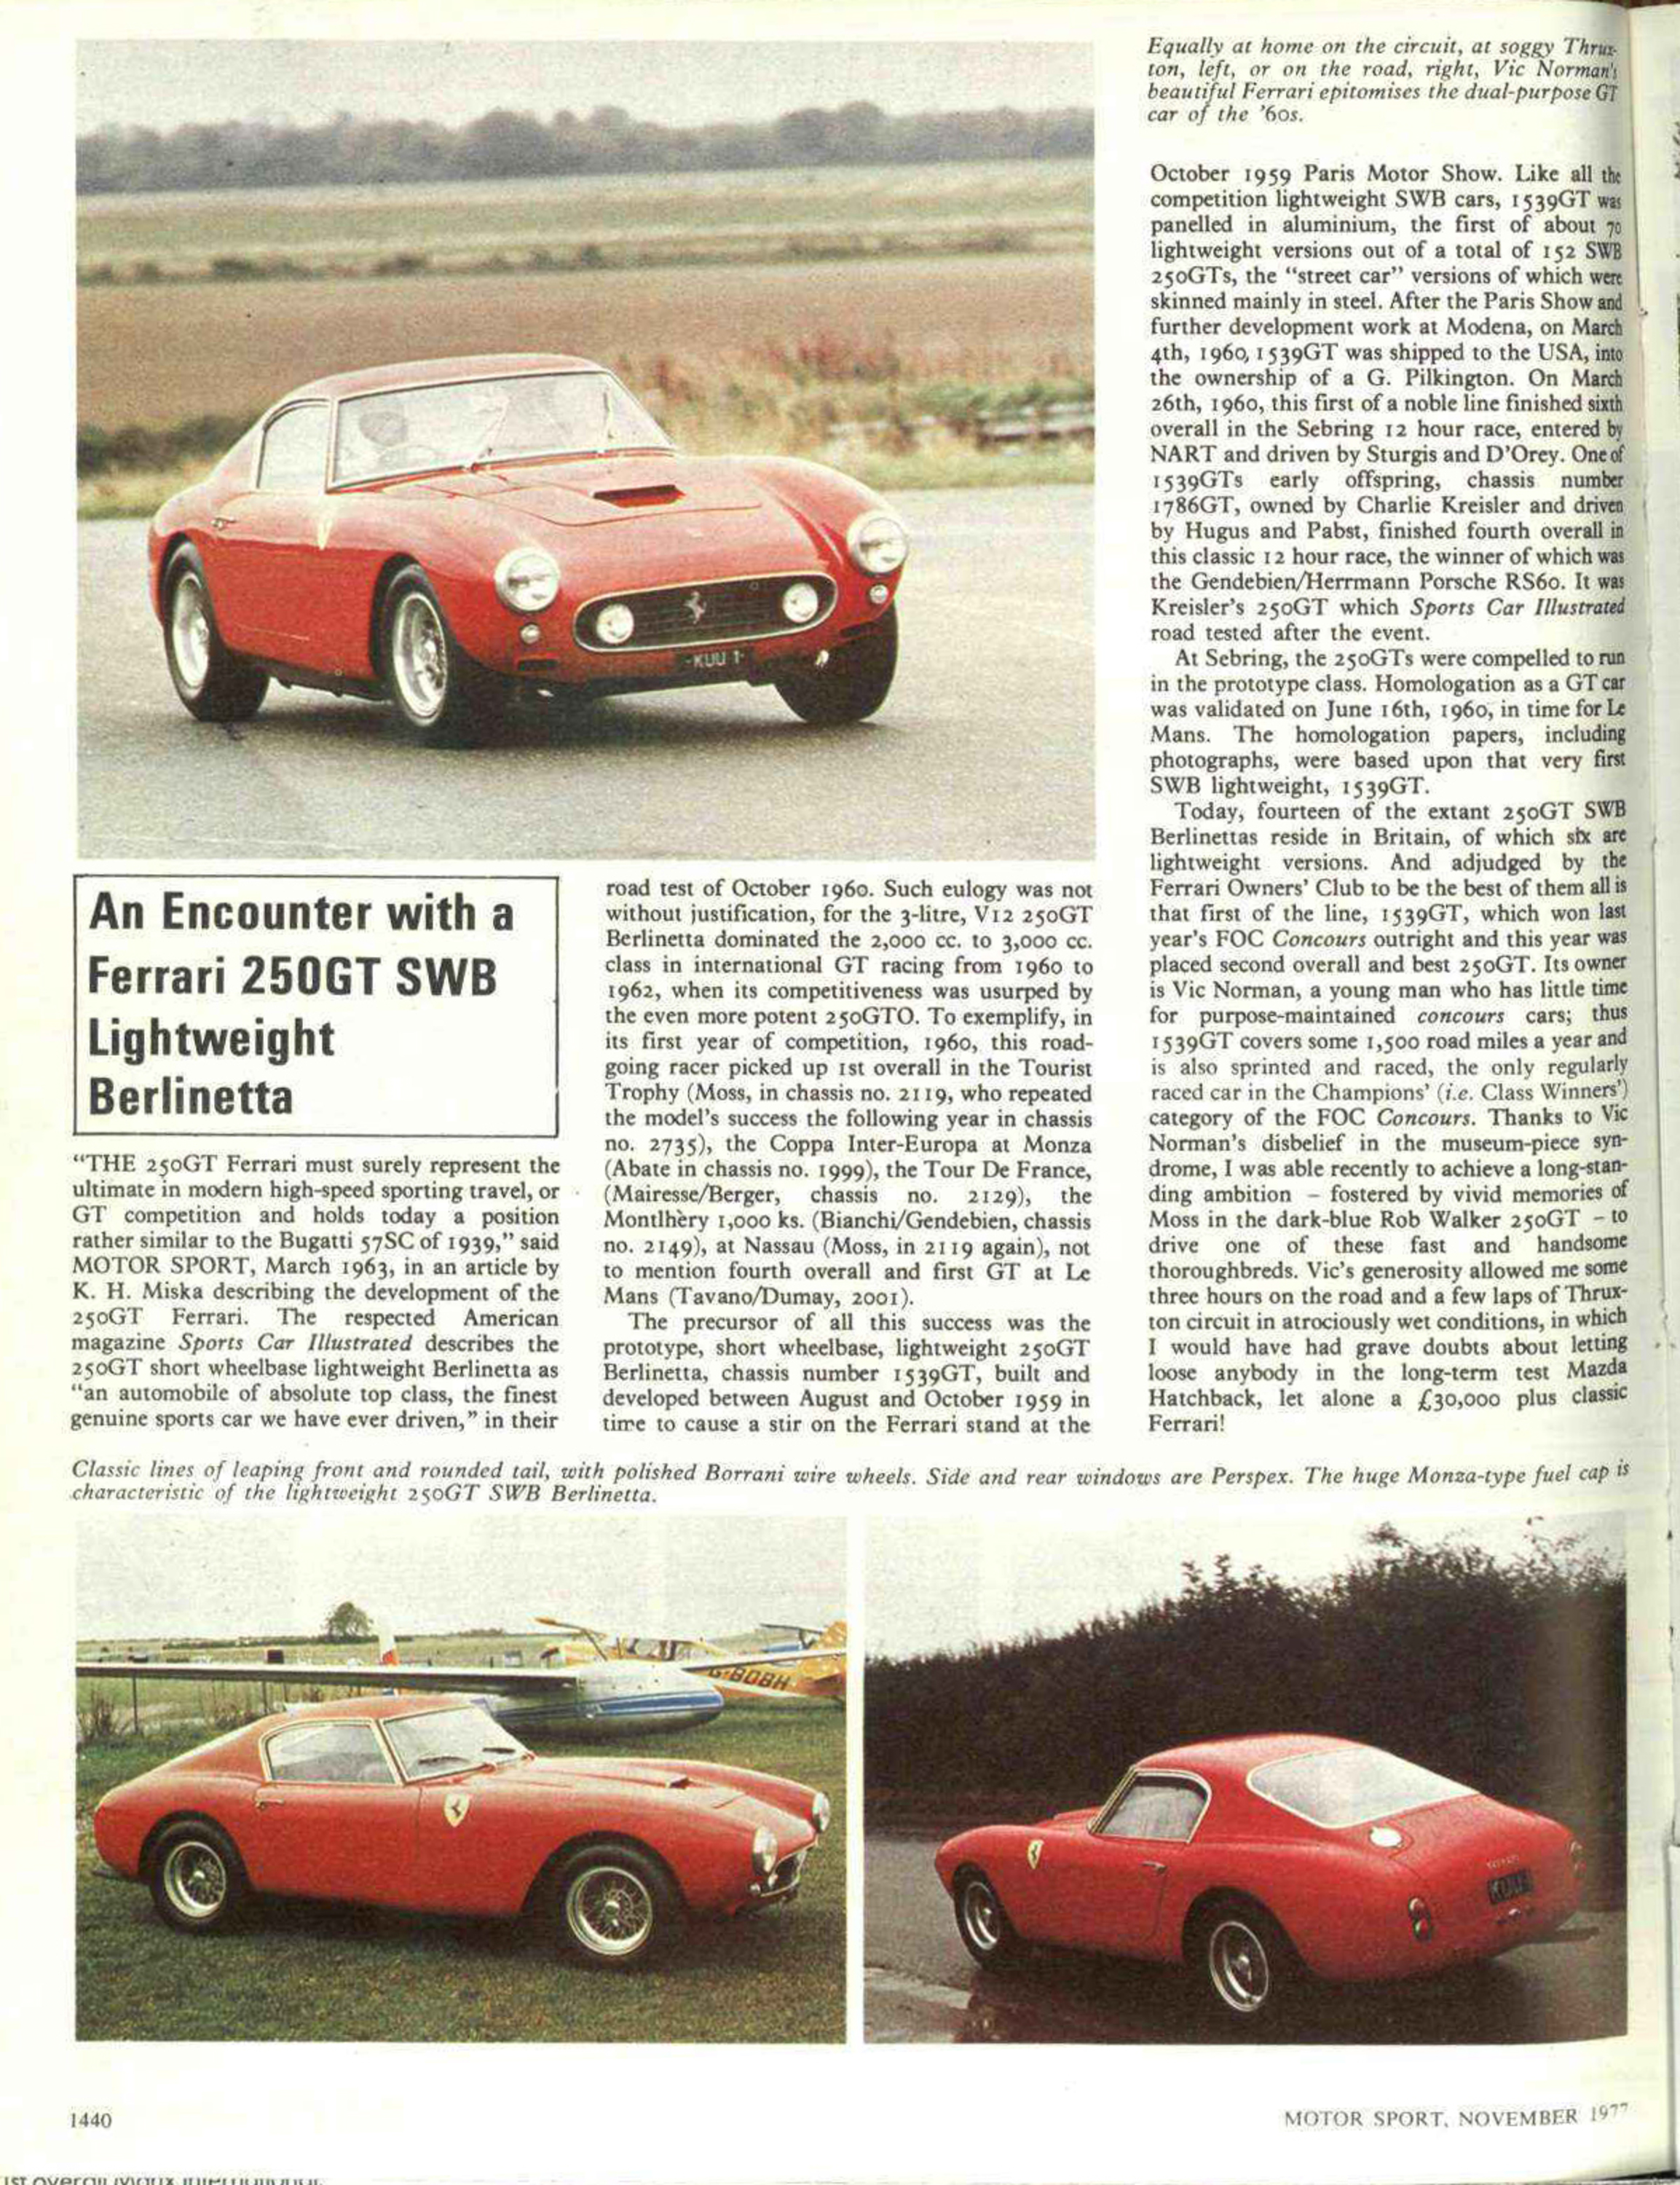 an encounter with a ferrari 250gt swb lightweight  image